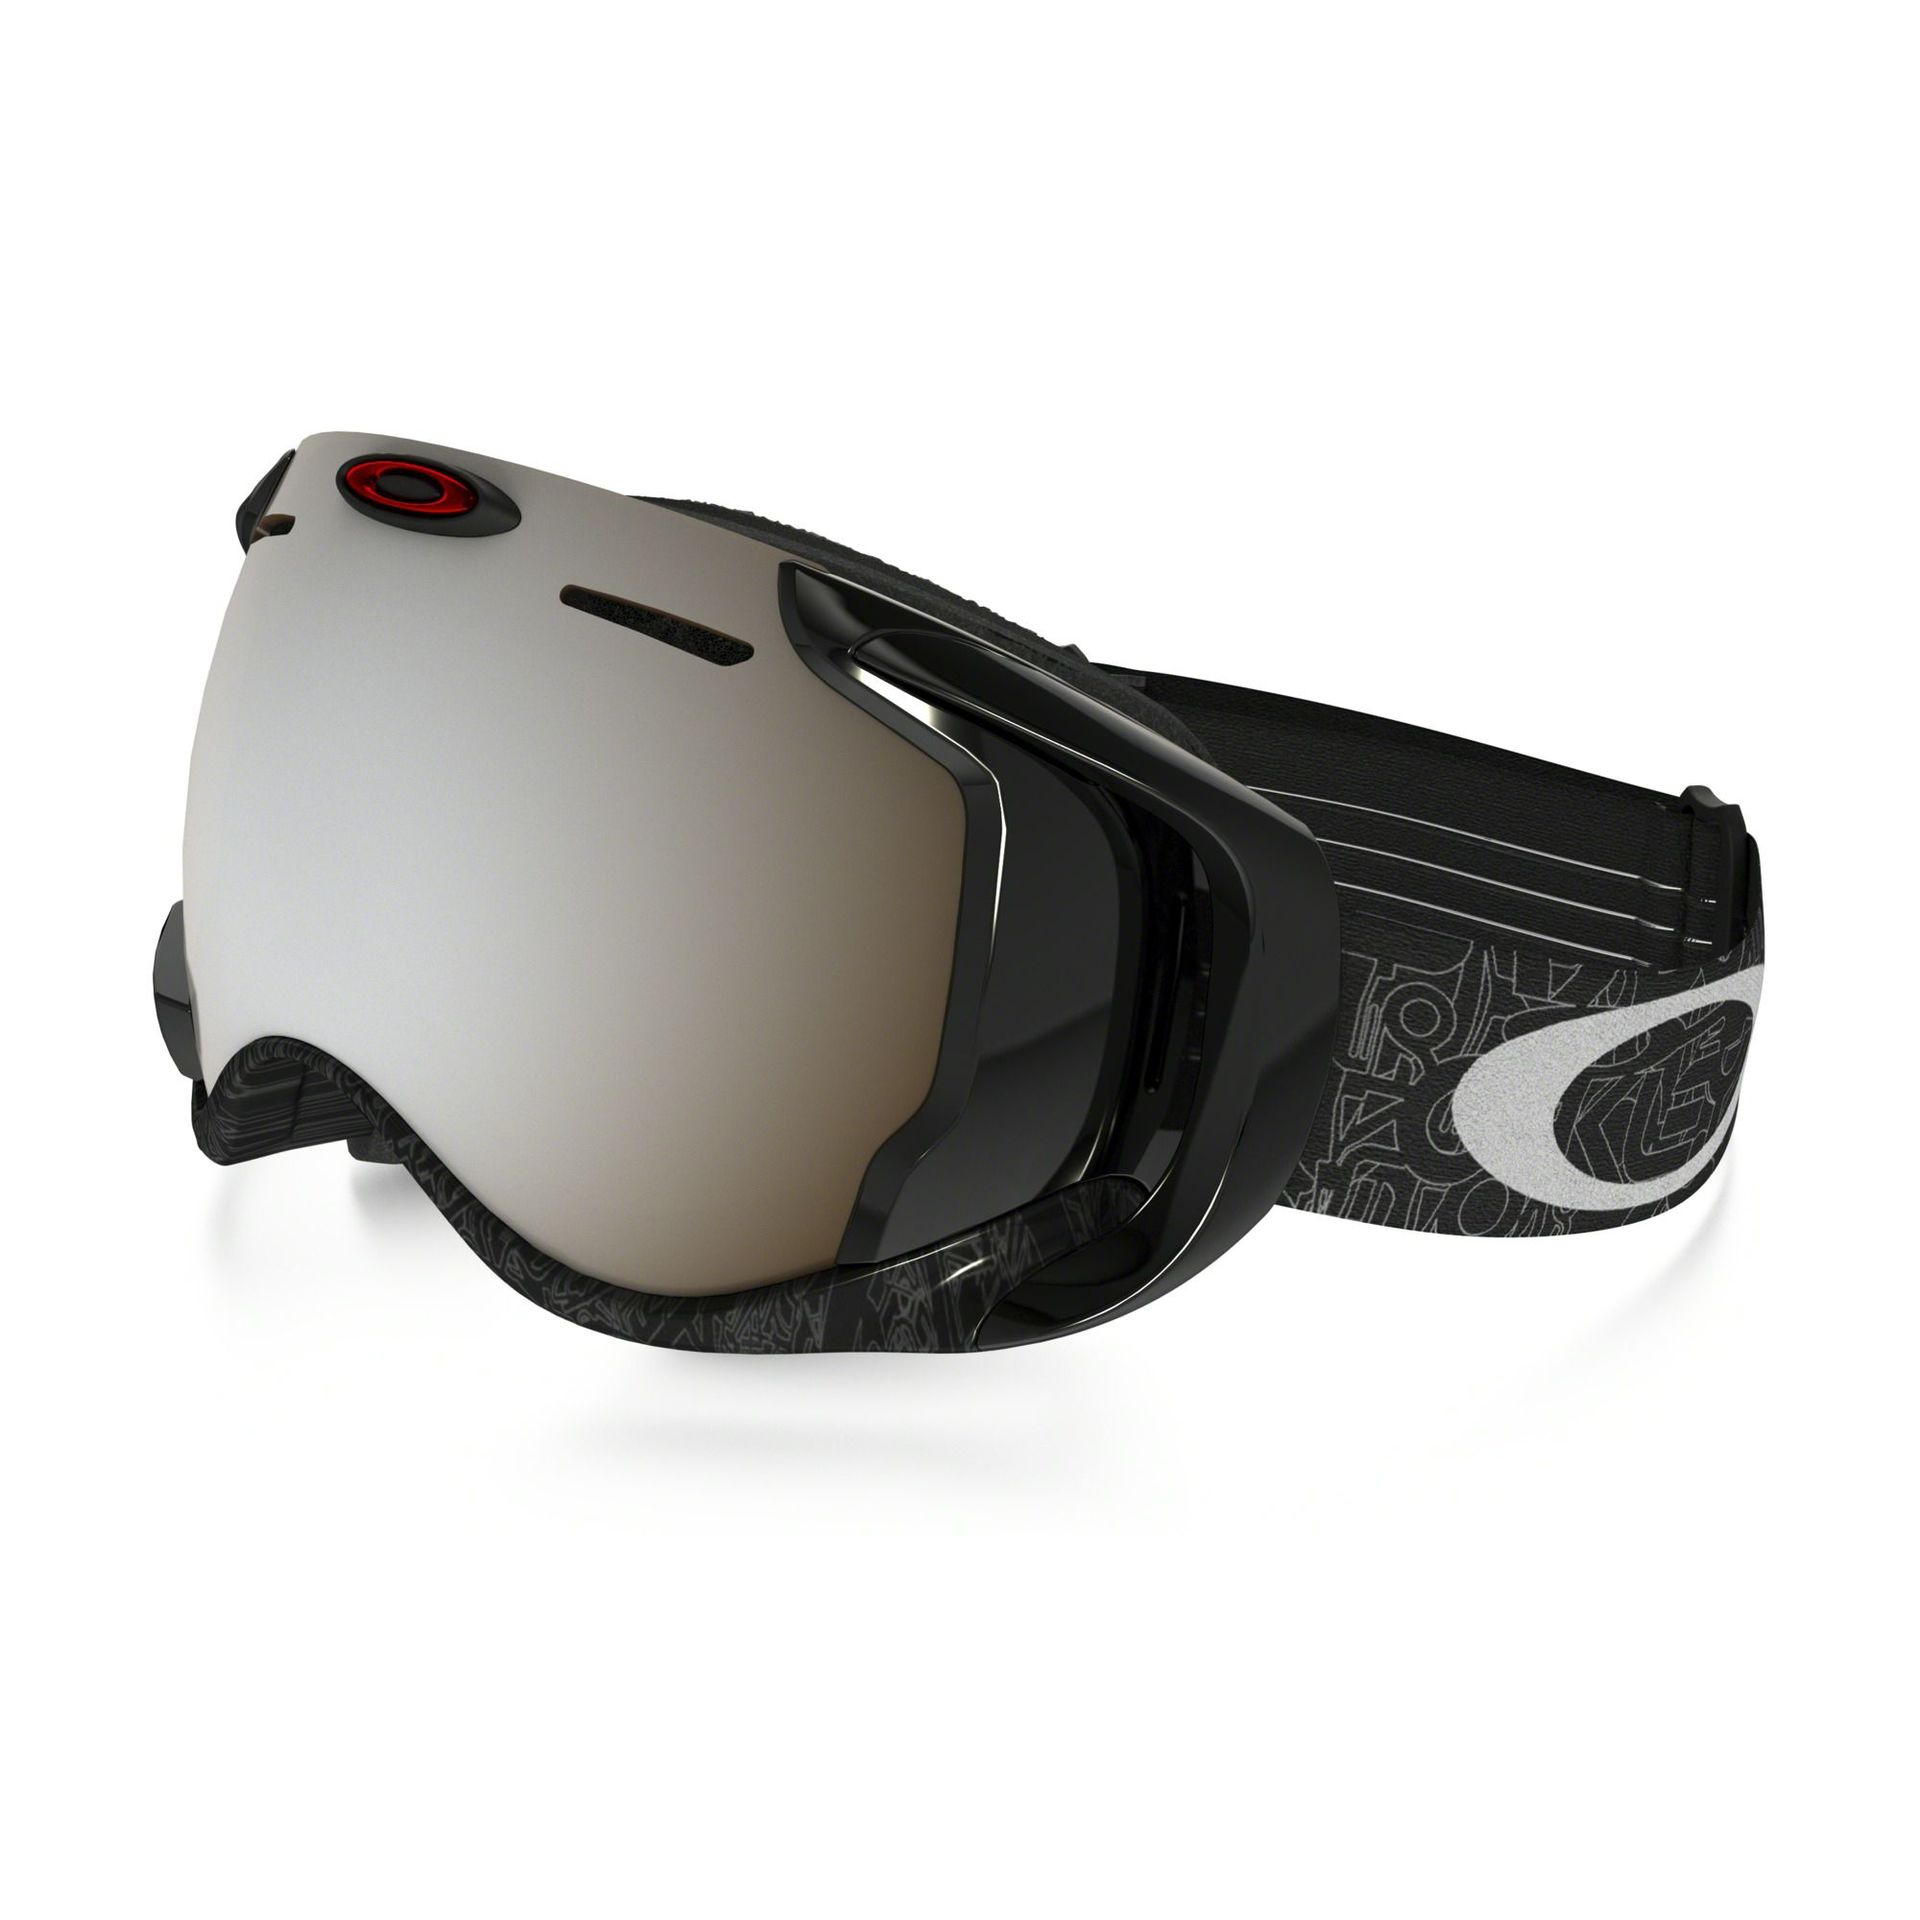 GOGLE OAKLEY AIRWAVE SILVER FACTORY TEXT BLACK IRIDIUM